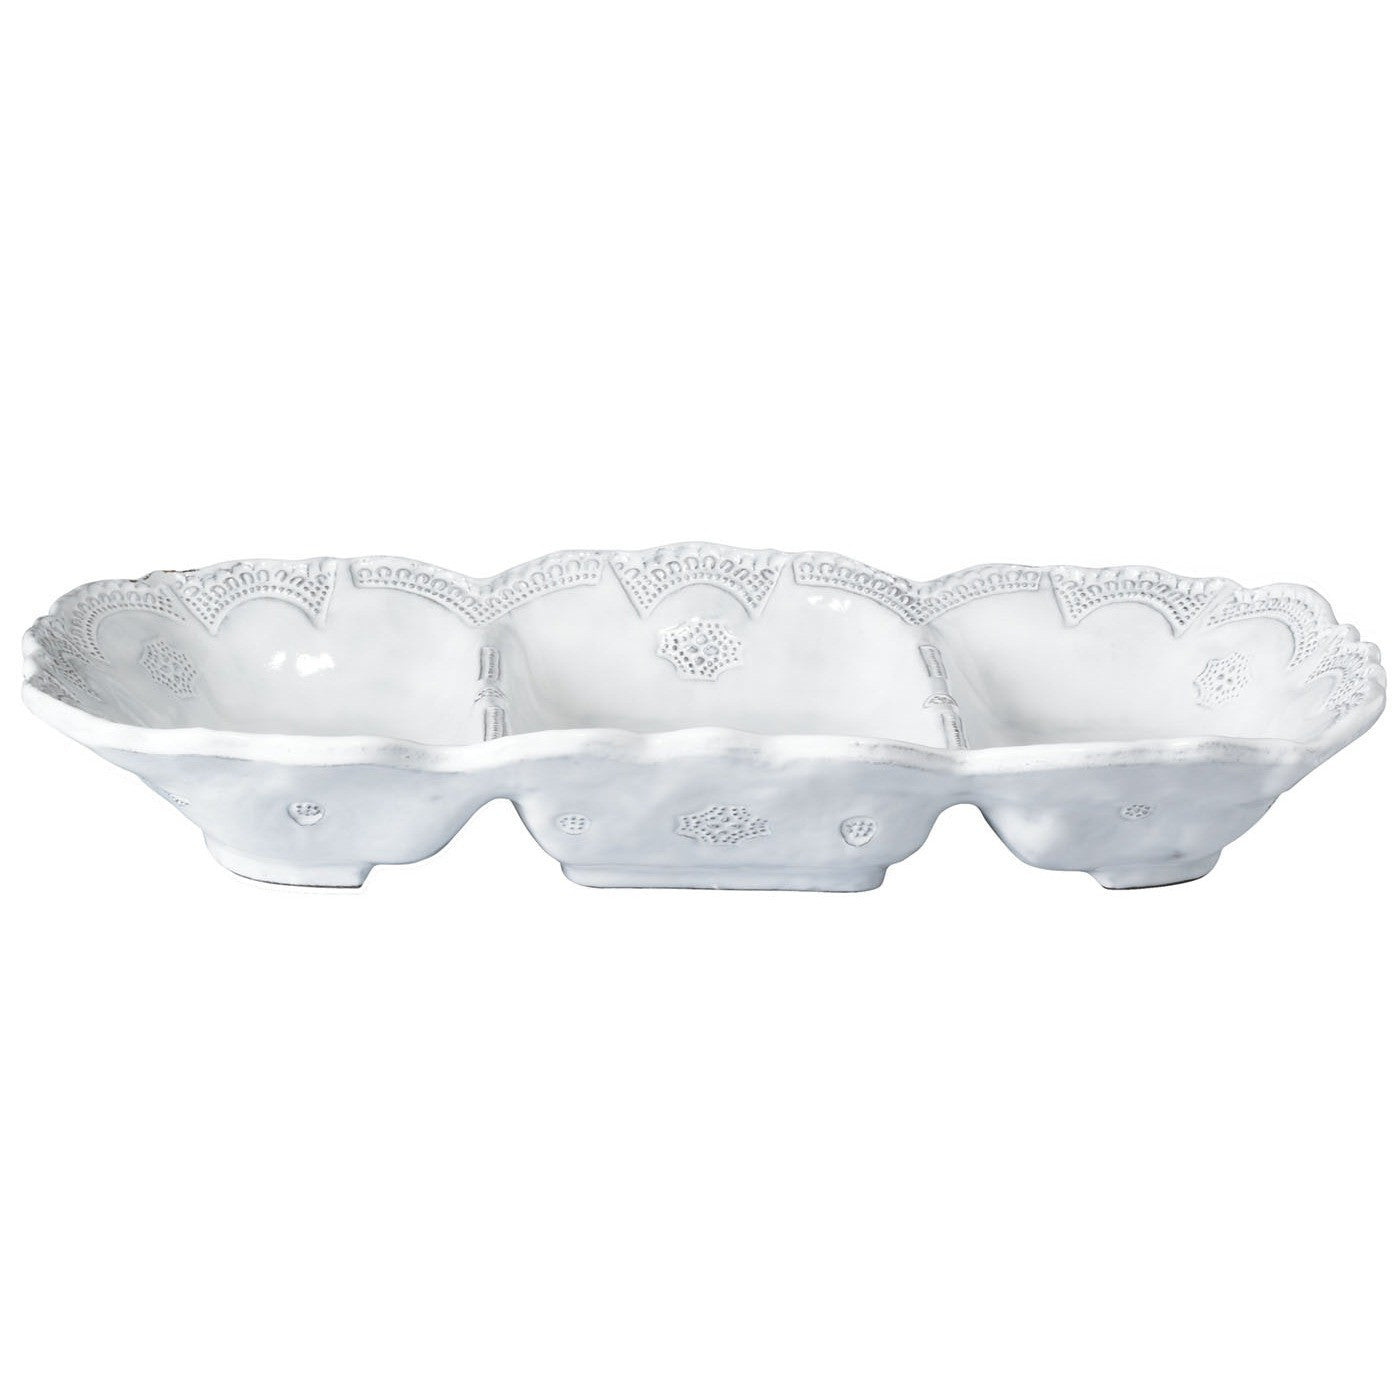 Incanto Lace Medium Three Part Server , tableware - Vietri, Pezzo Bello